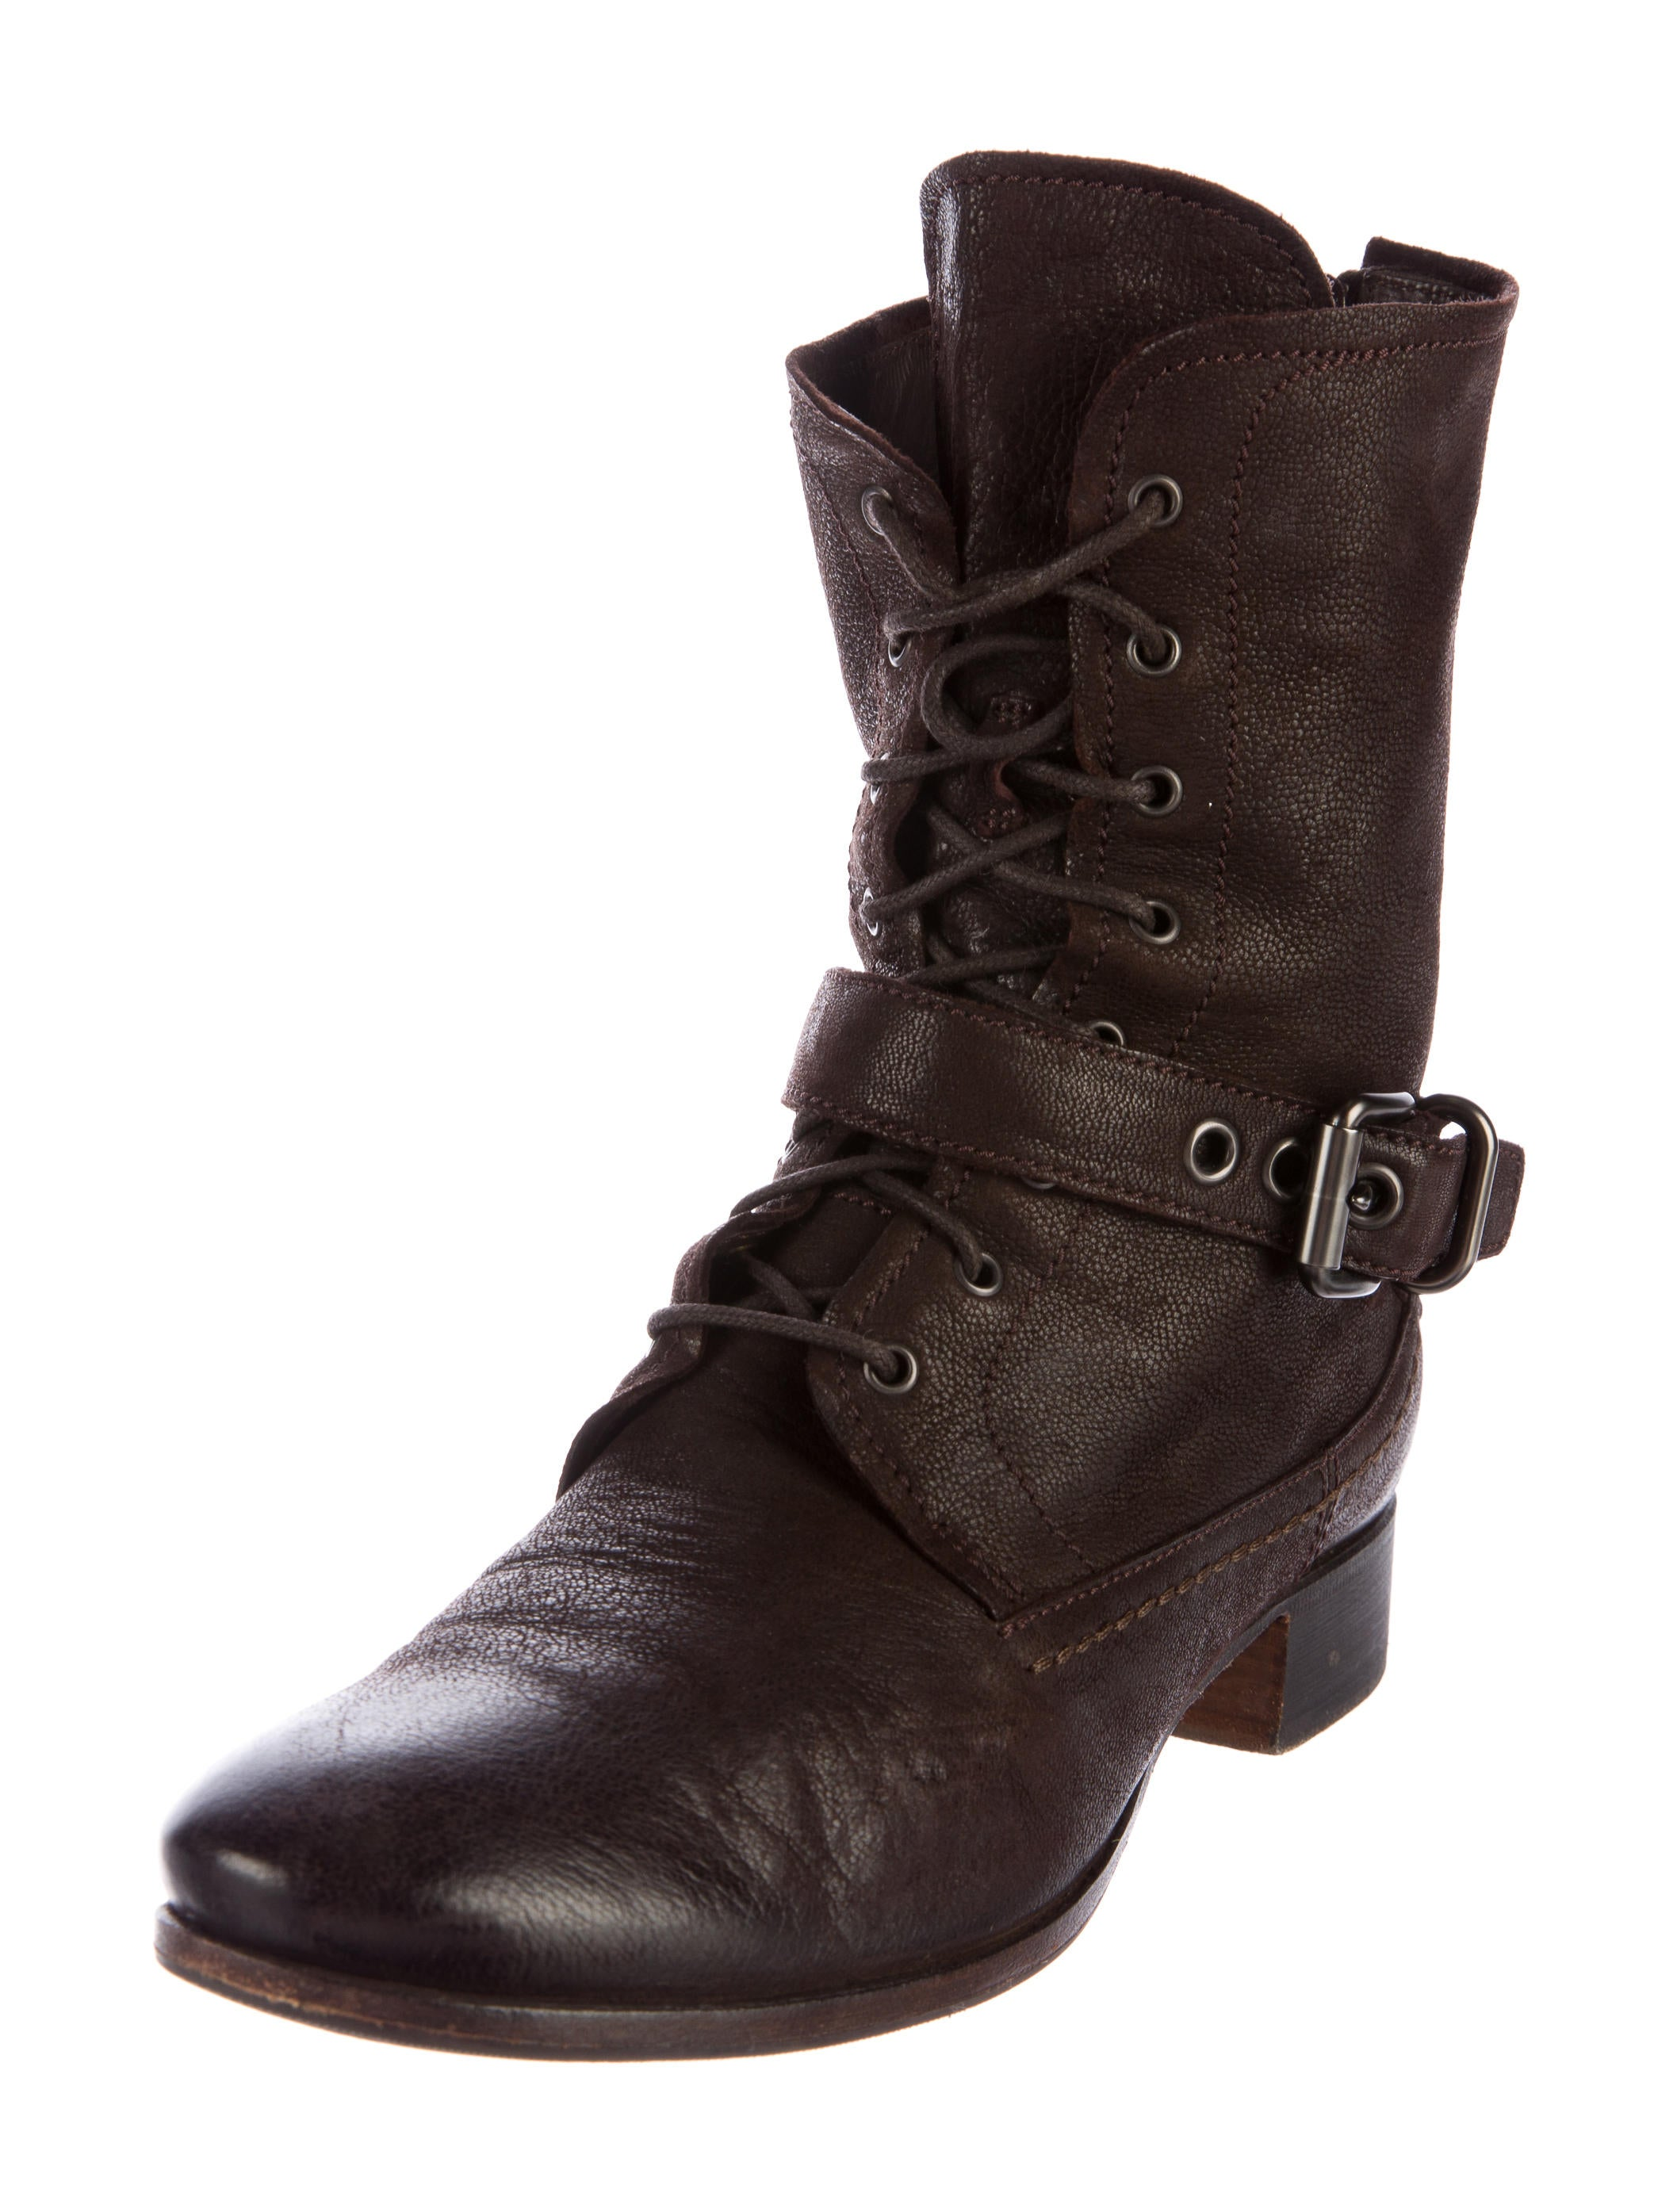 prada leather lace up ankle boots shoes pra142928